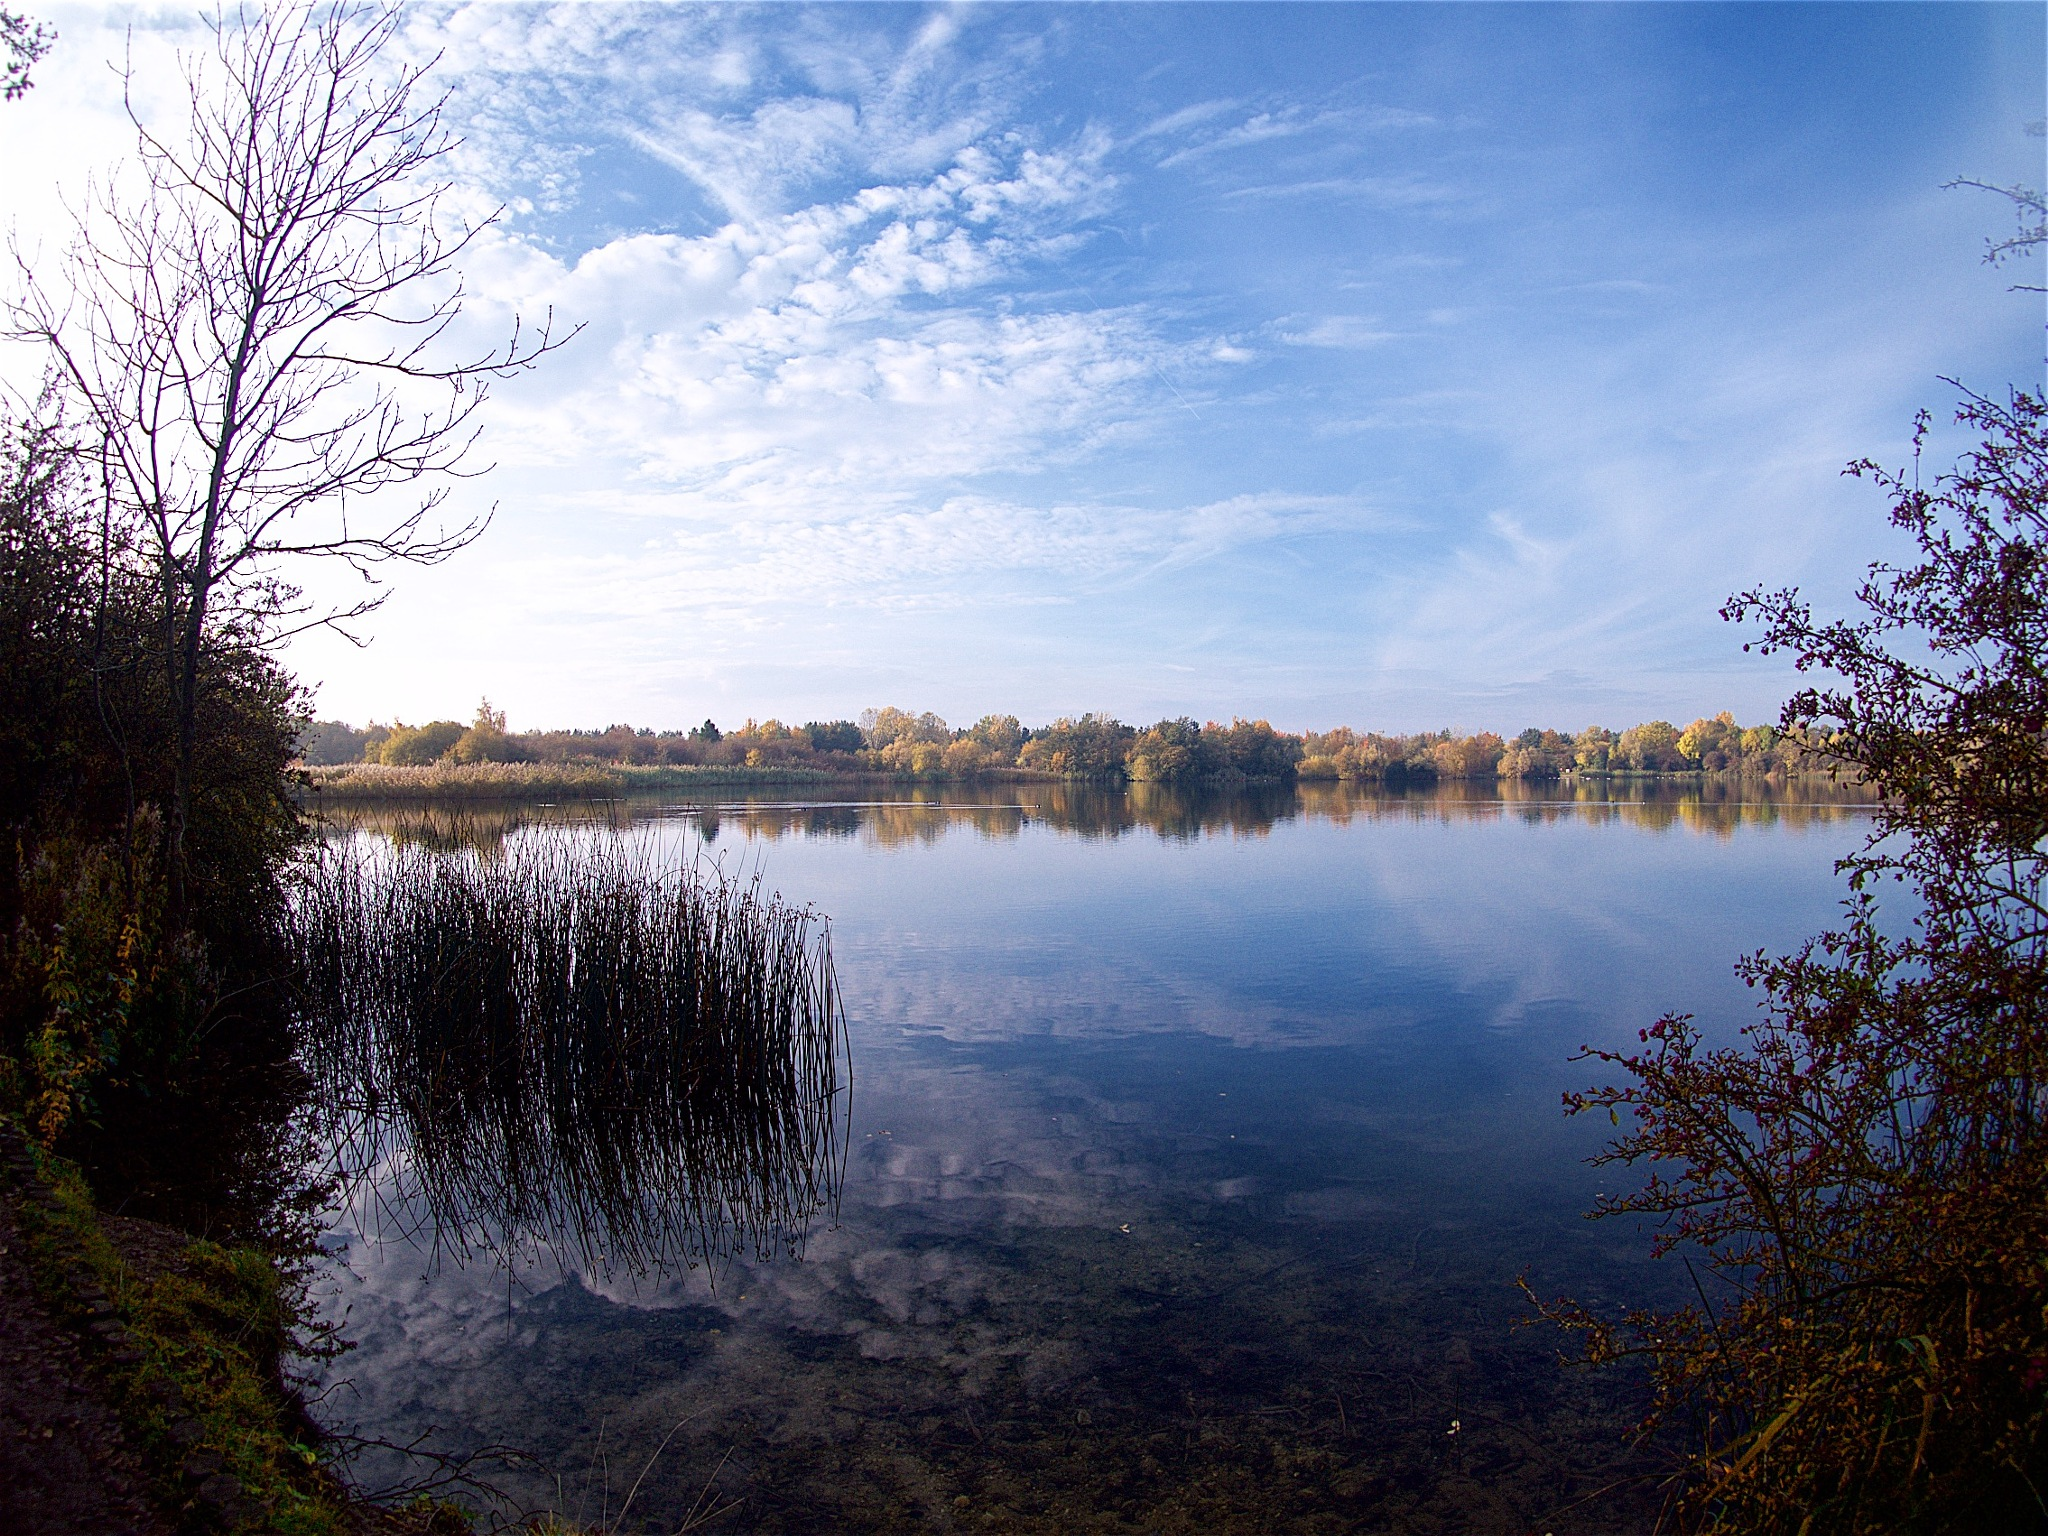 Lake by Tony Otley